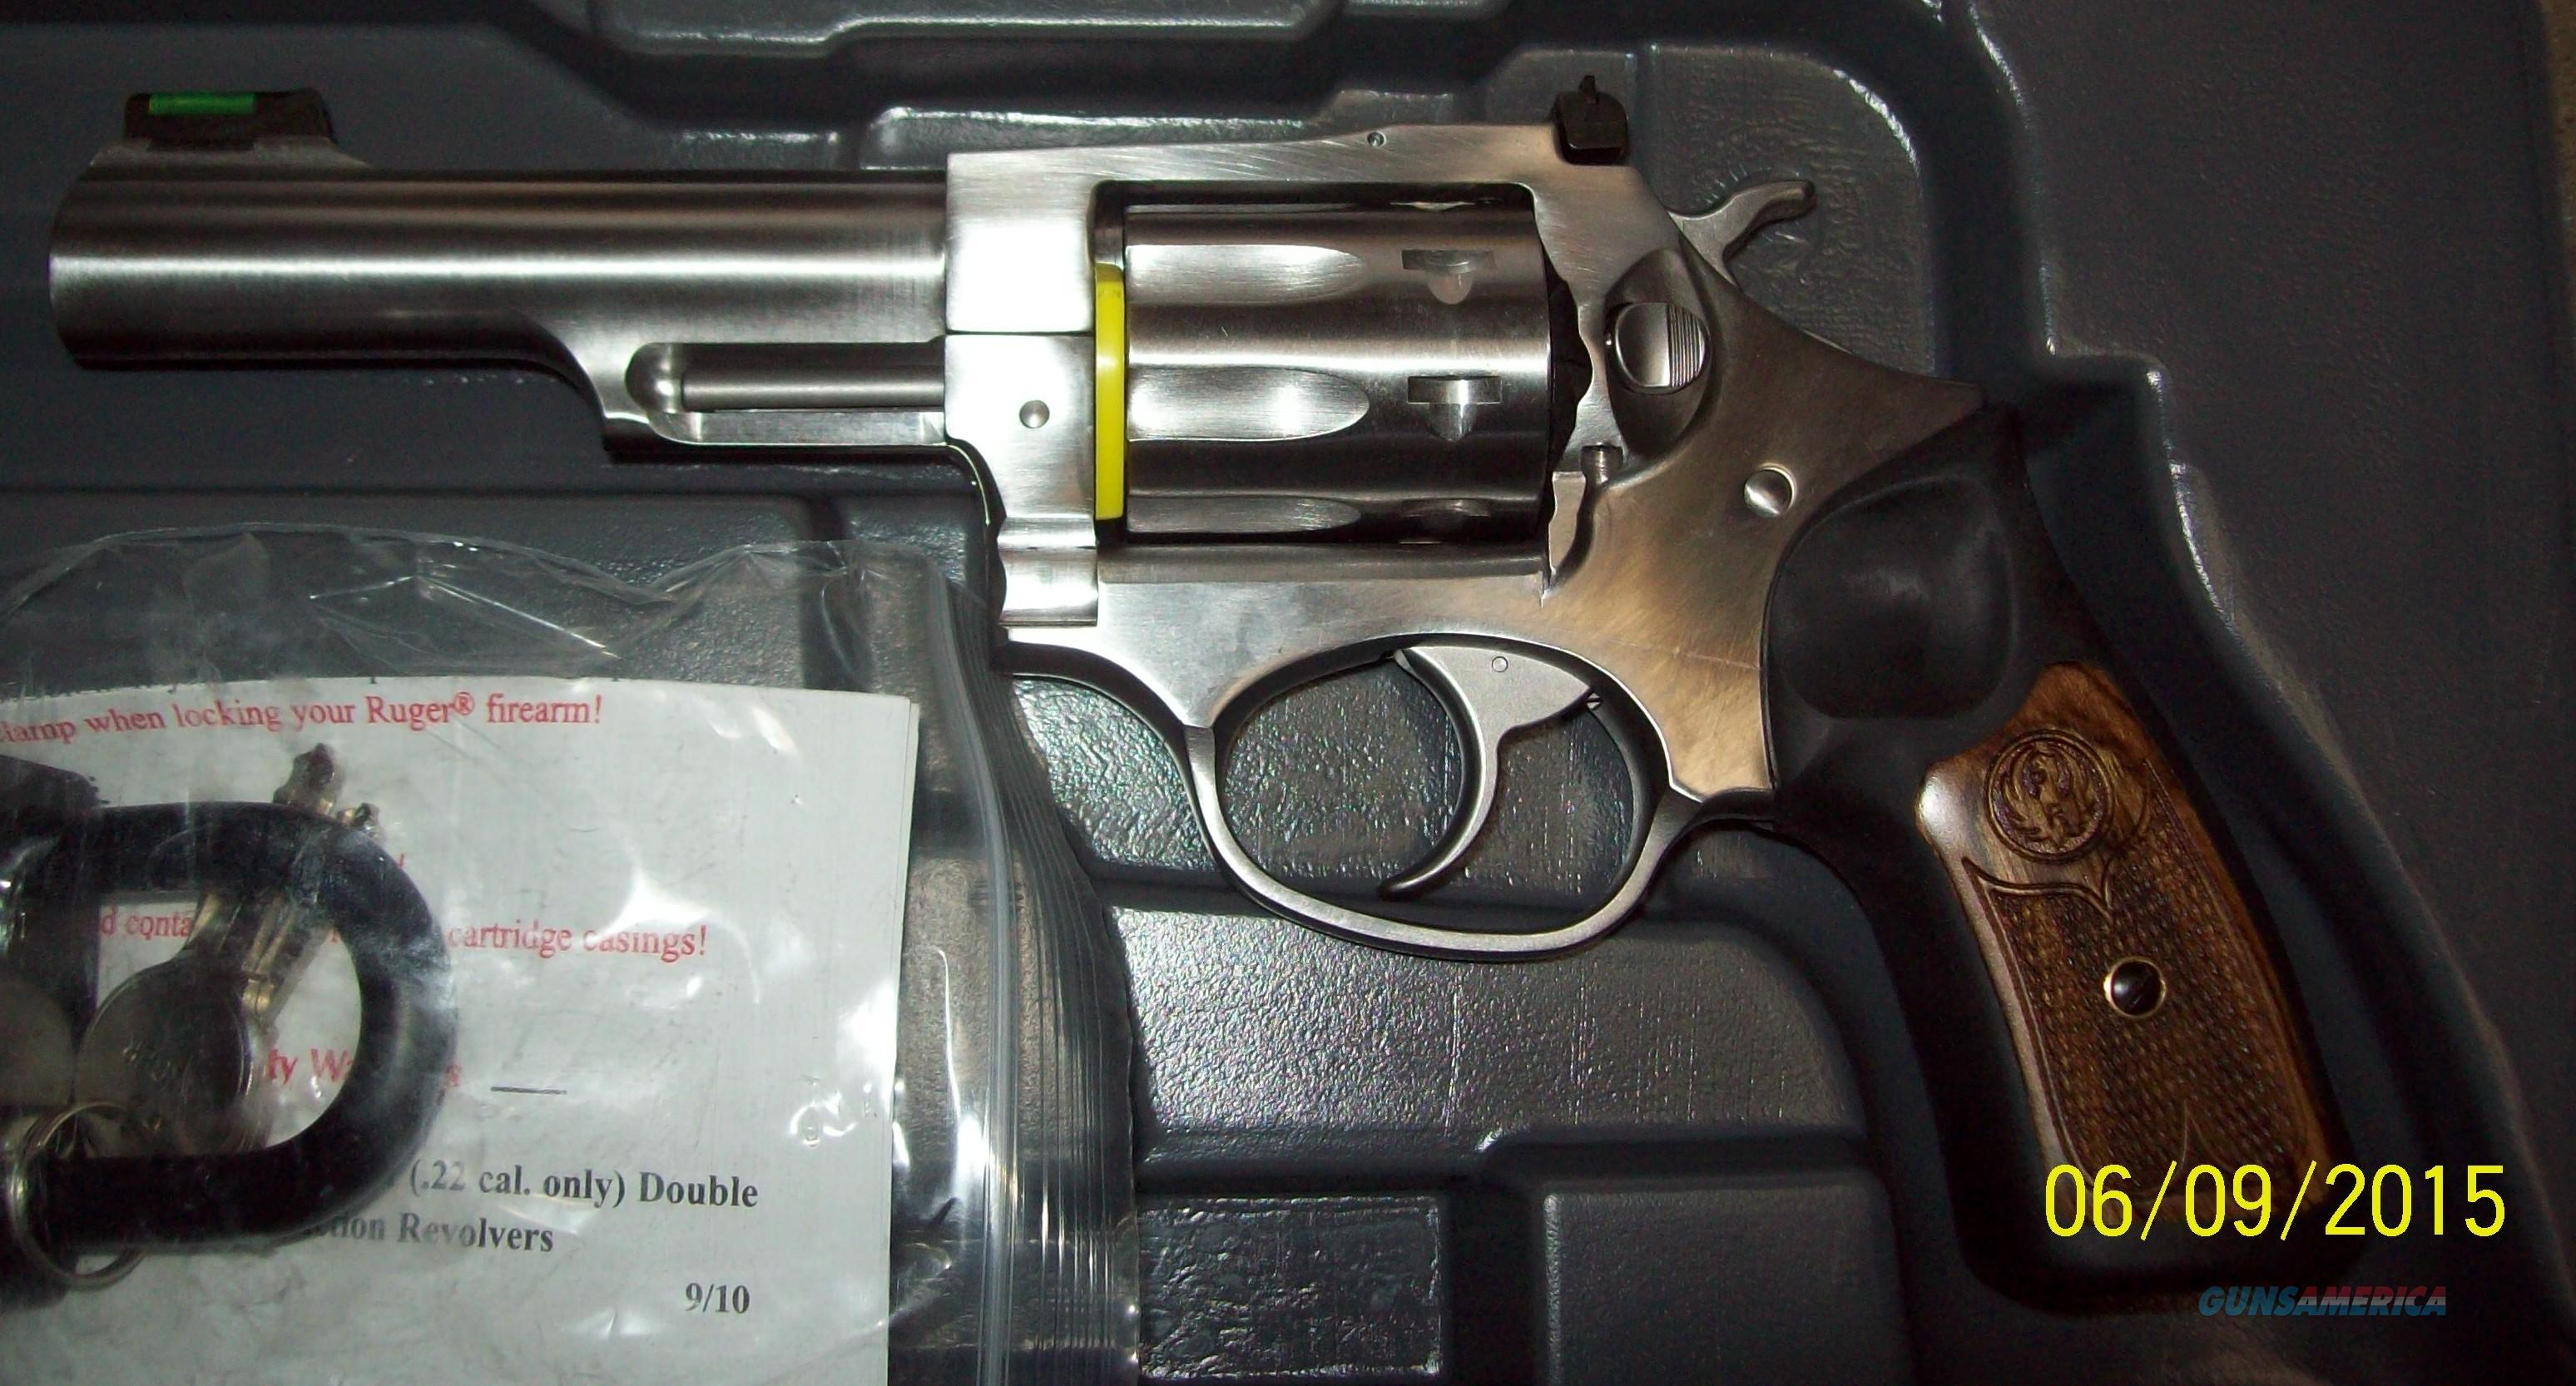 SP-101 .22 LR  Guns > Pistols > Ruger Double Action Revolver > SP101 Type